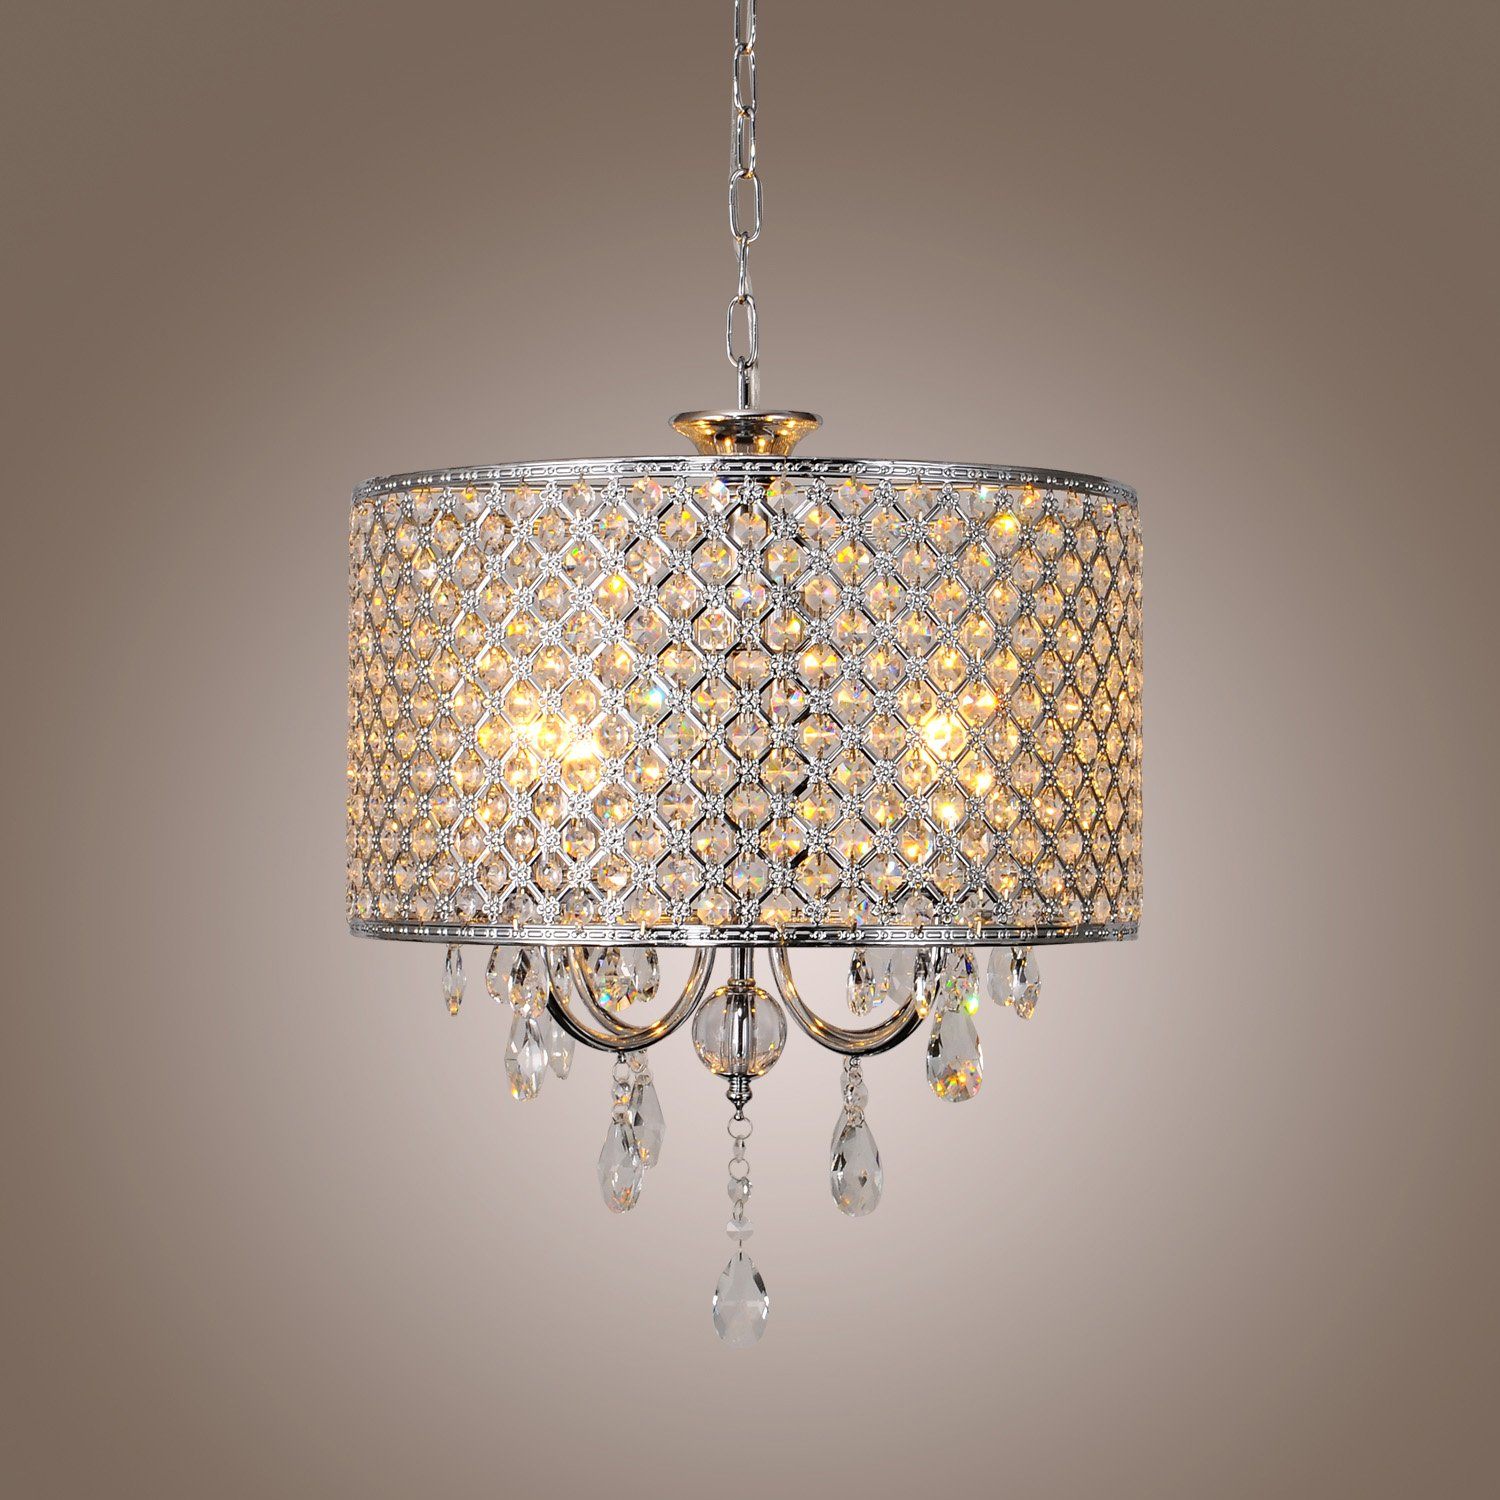 Drum Chandelier Crystal Modern 4 Lights 110 120V Amazon